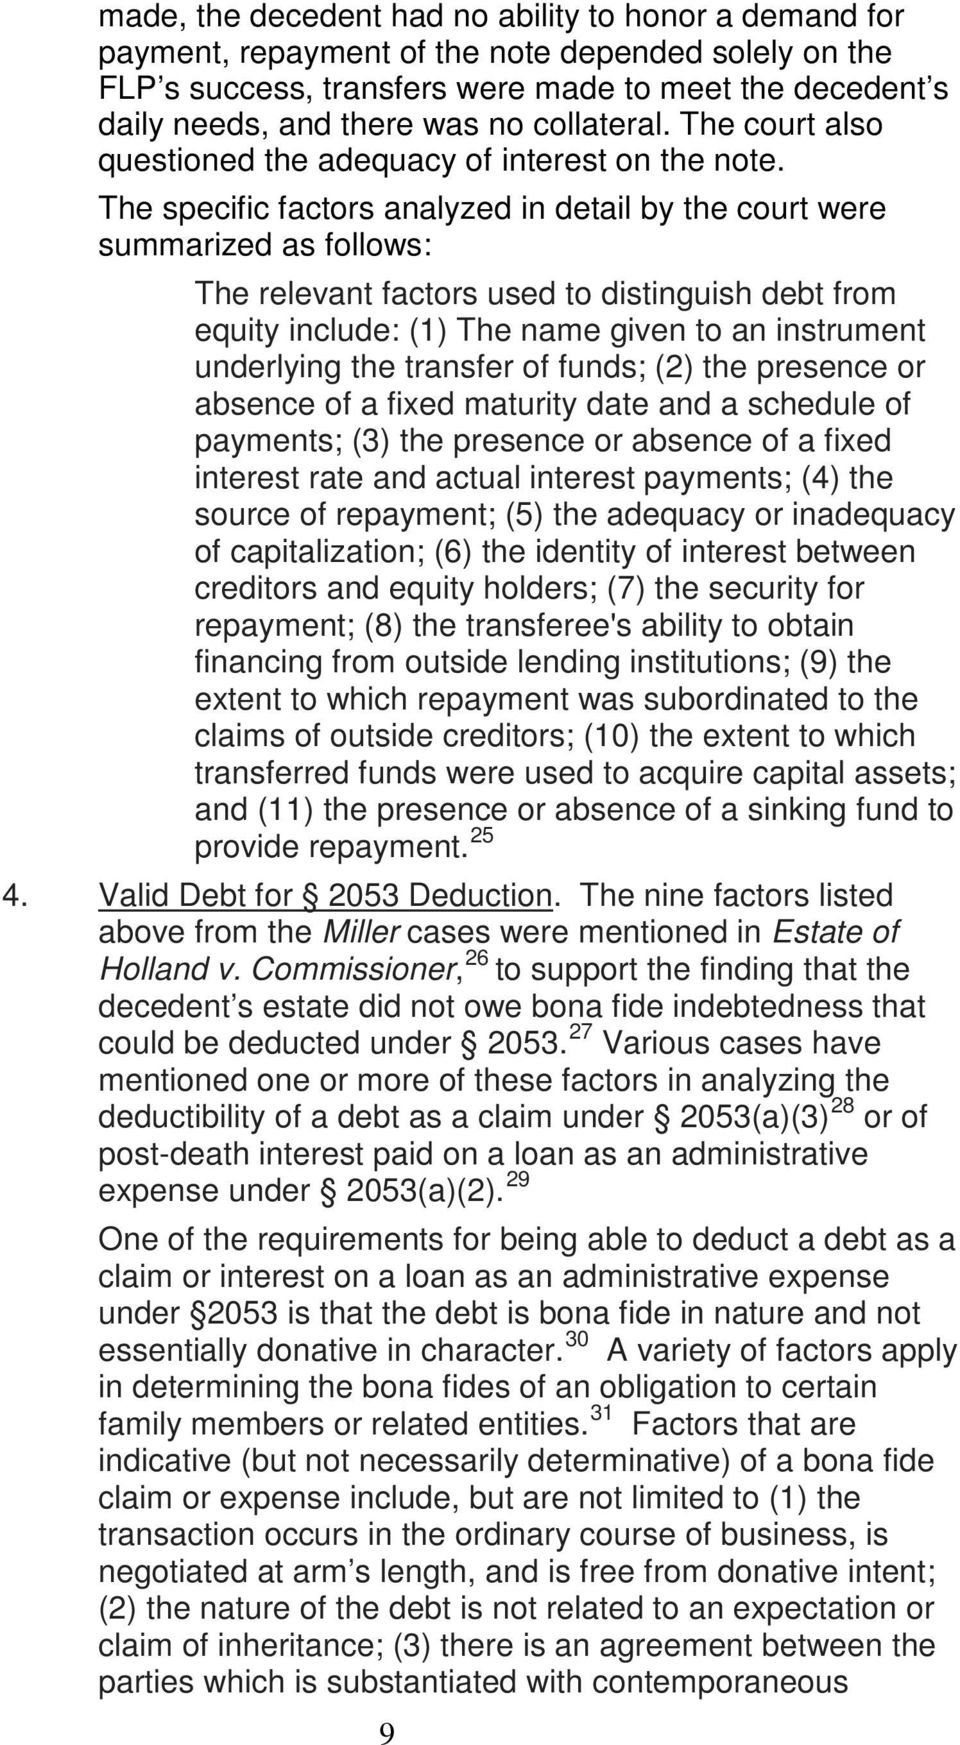 The specific factors analyzed in detail by the court were summarized as follows: The relevant factors used to distinguish debt from equity include: (1) The name given to an instrument underlying the